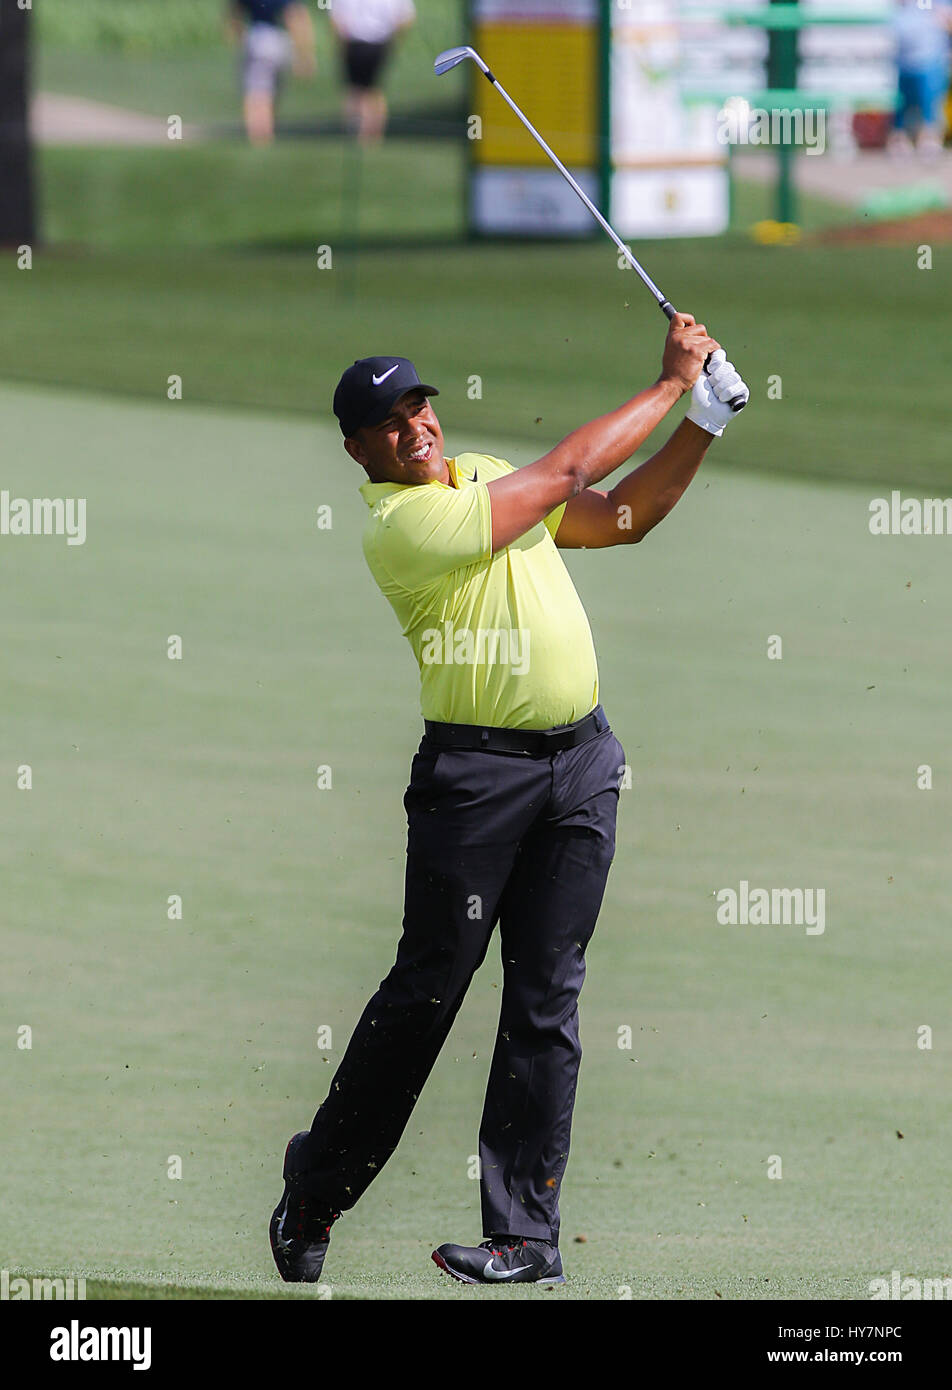 Humble, Texas, USA. 1st Apr, 2017. Jhonattan Vegas hits a shot off the fairway during the third round of the Shell - Stock Image